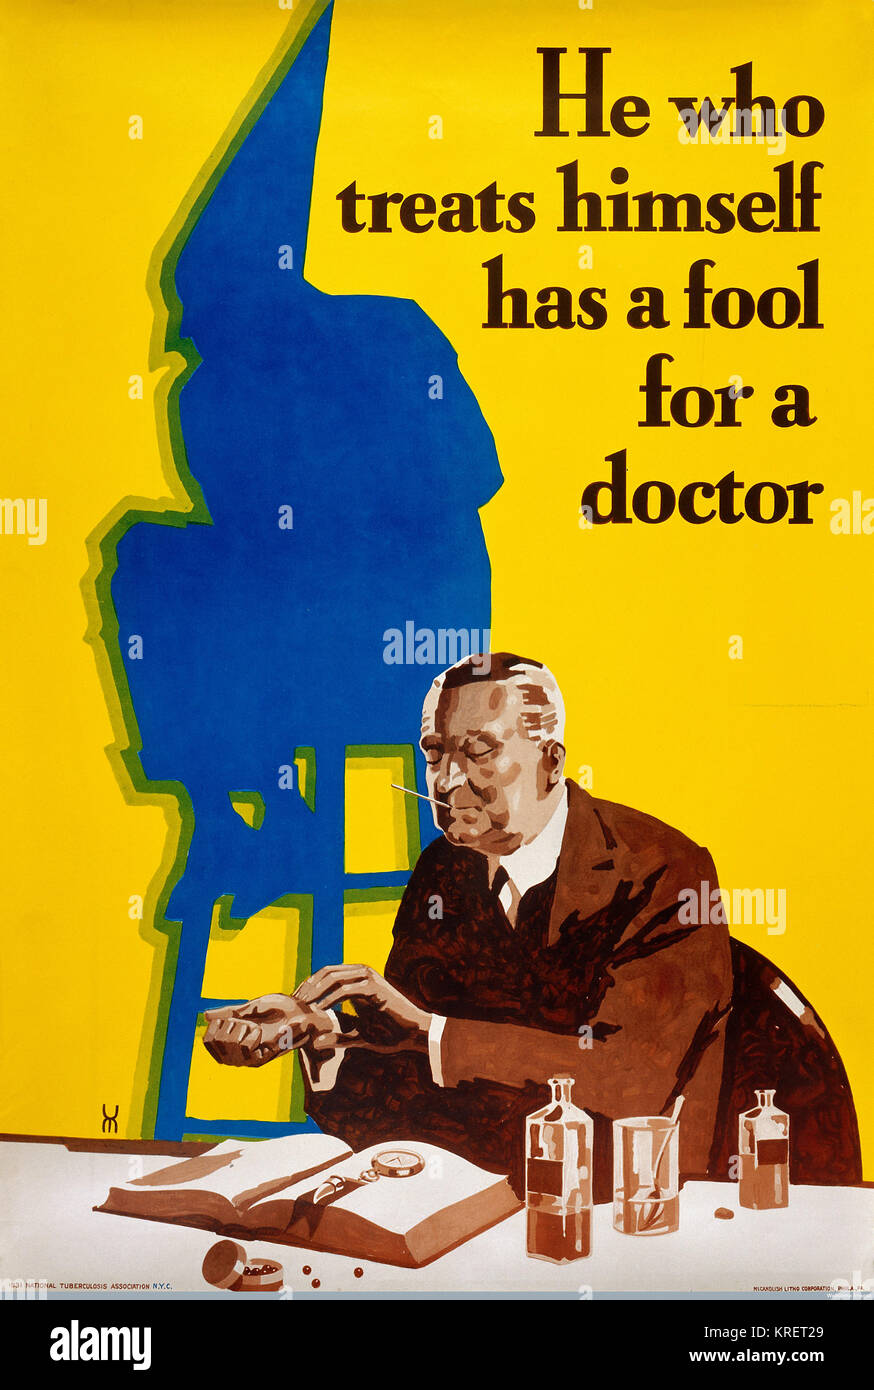 L0032775 He who treats himself has a fool for a doctor Credit: Wellcome Library, London. Wellcome Images images@wellcome.ac.uk - Stock Image